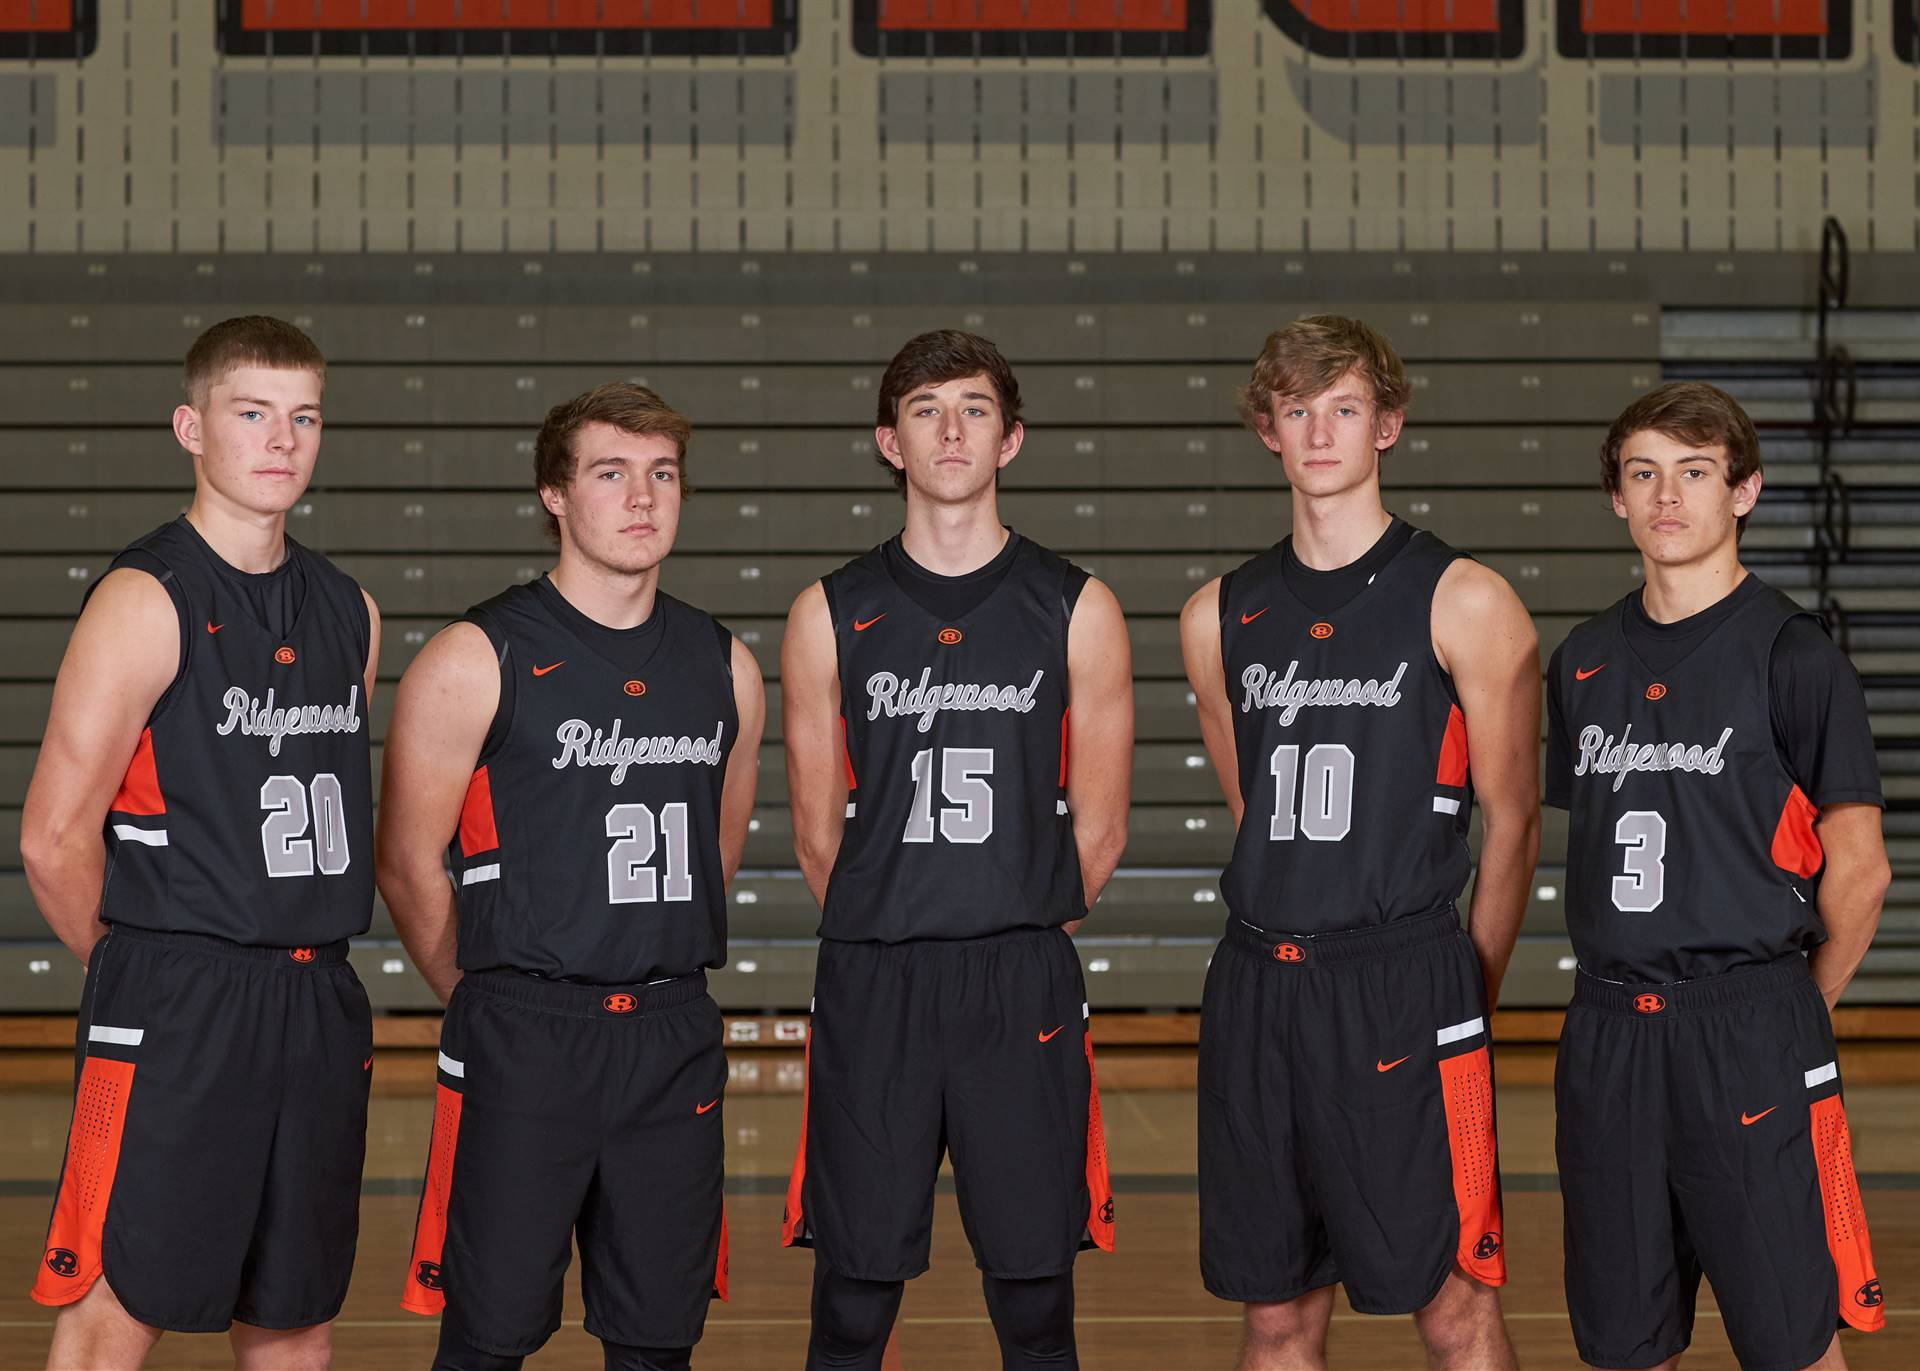 HS Boys Varsity Basketball - Returning Lettermen